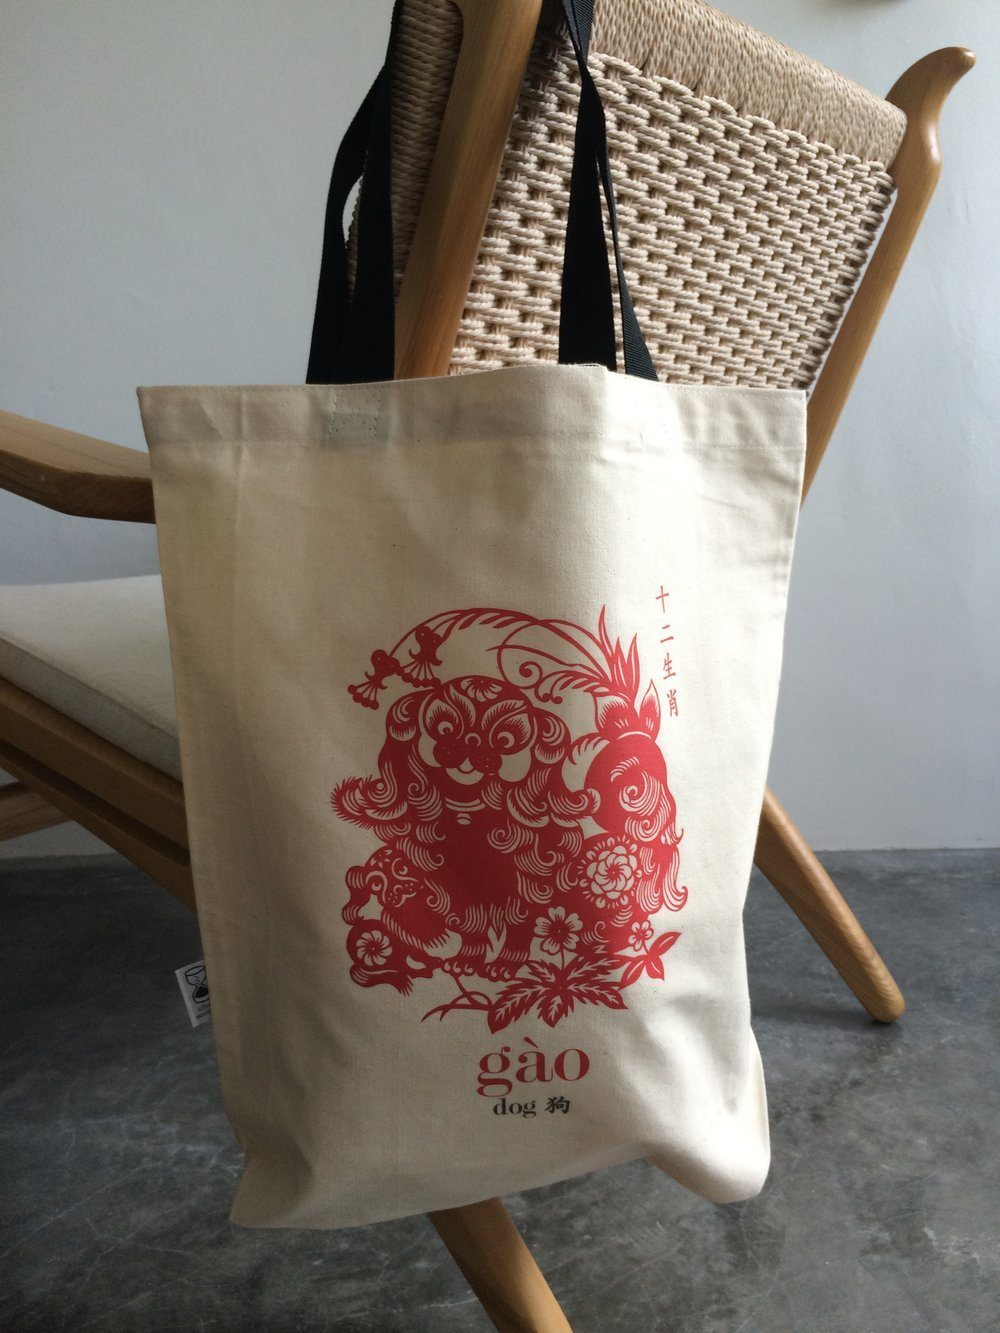 Zodiac Tote Bag - Gao (Dog) Local Tote Bags Sibeynostalgic